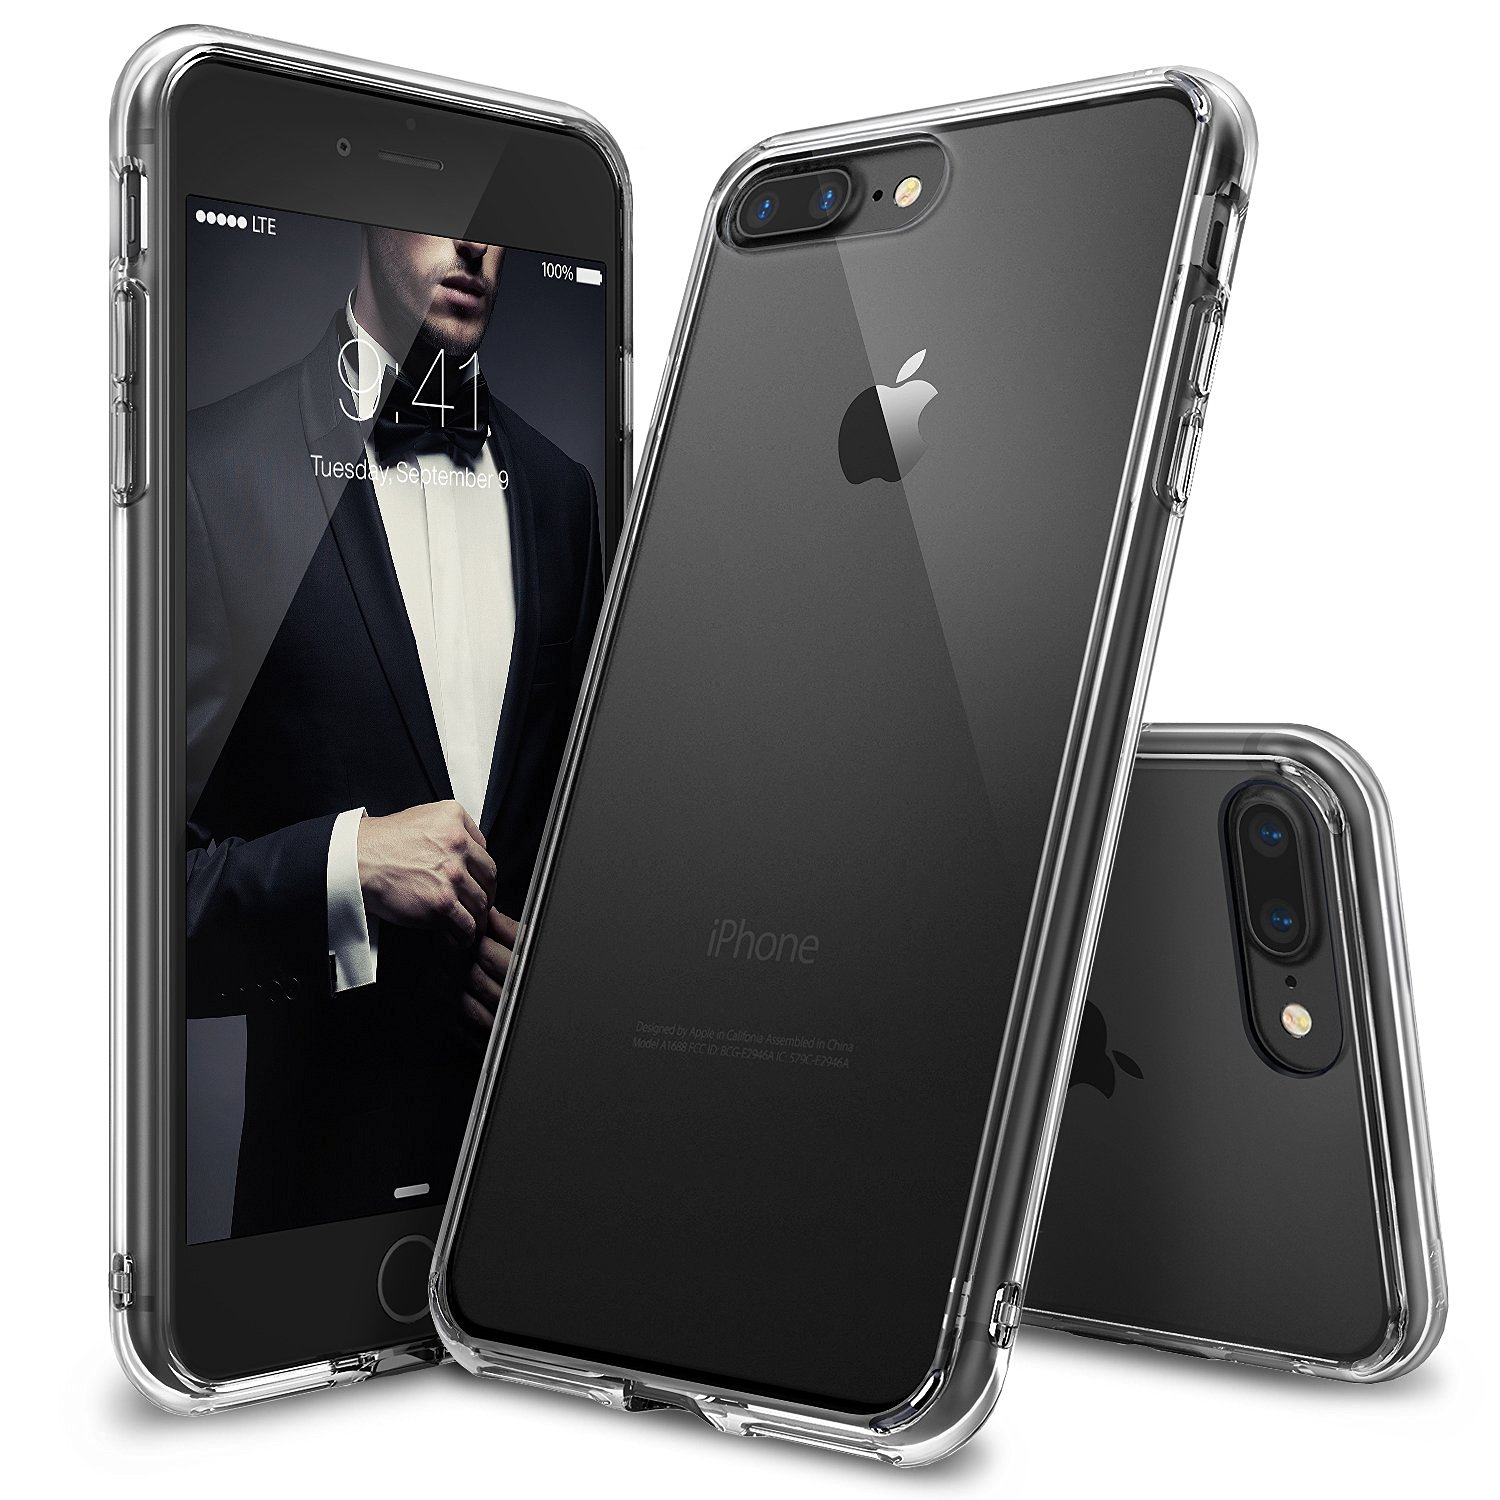 Discount iPhone 7 and 7 Plus Cases   Free Shipping from Amazon